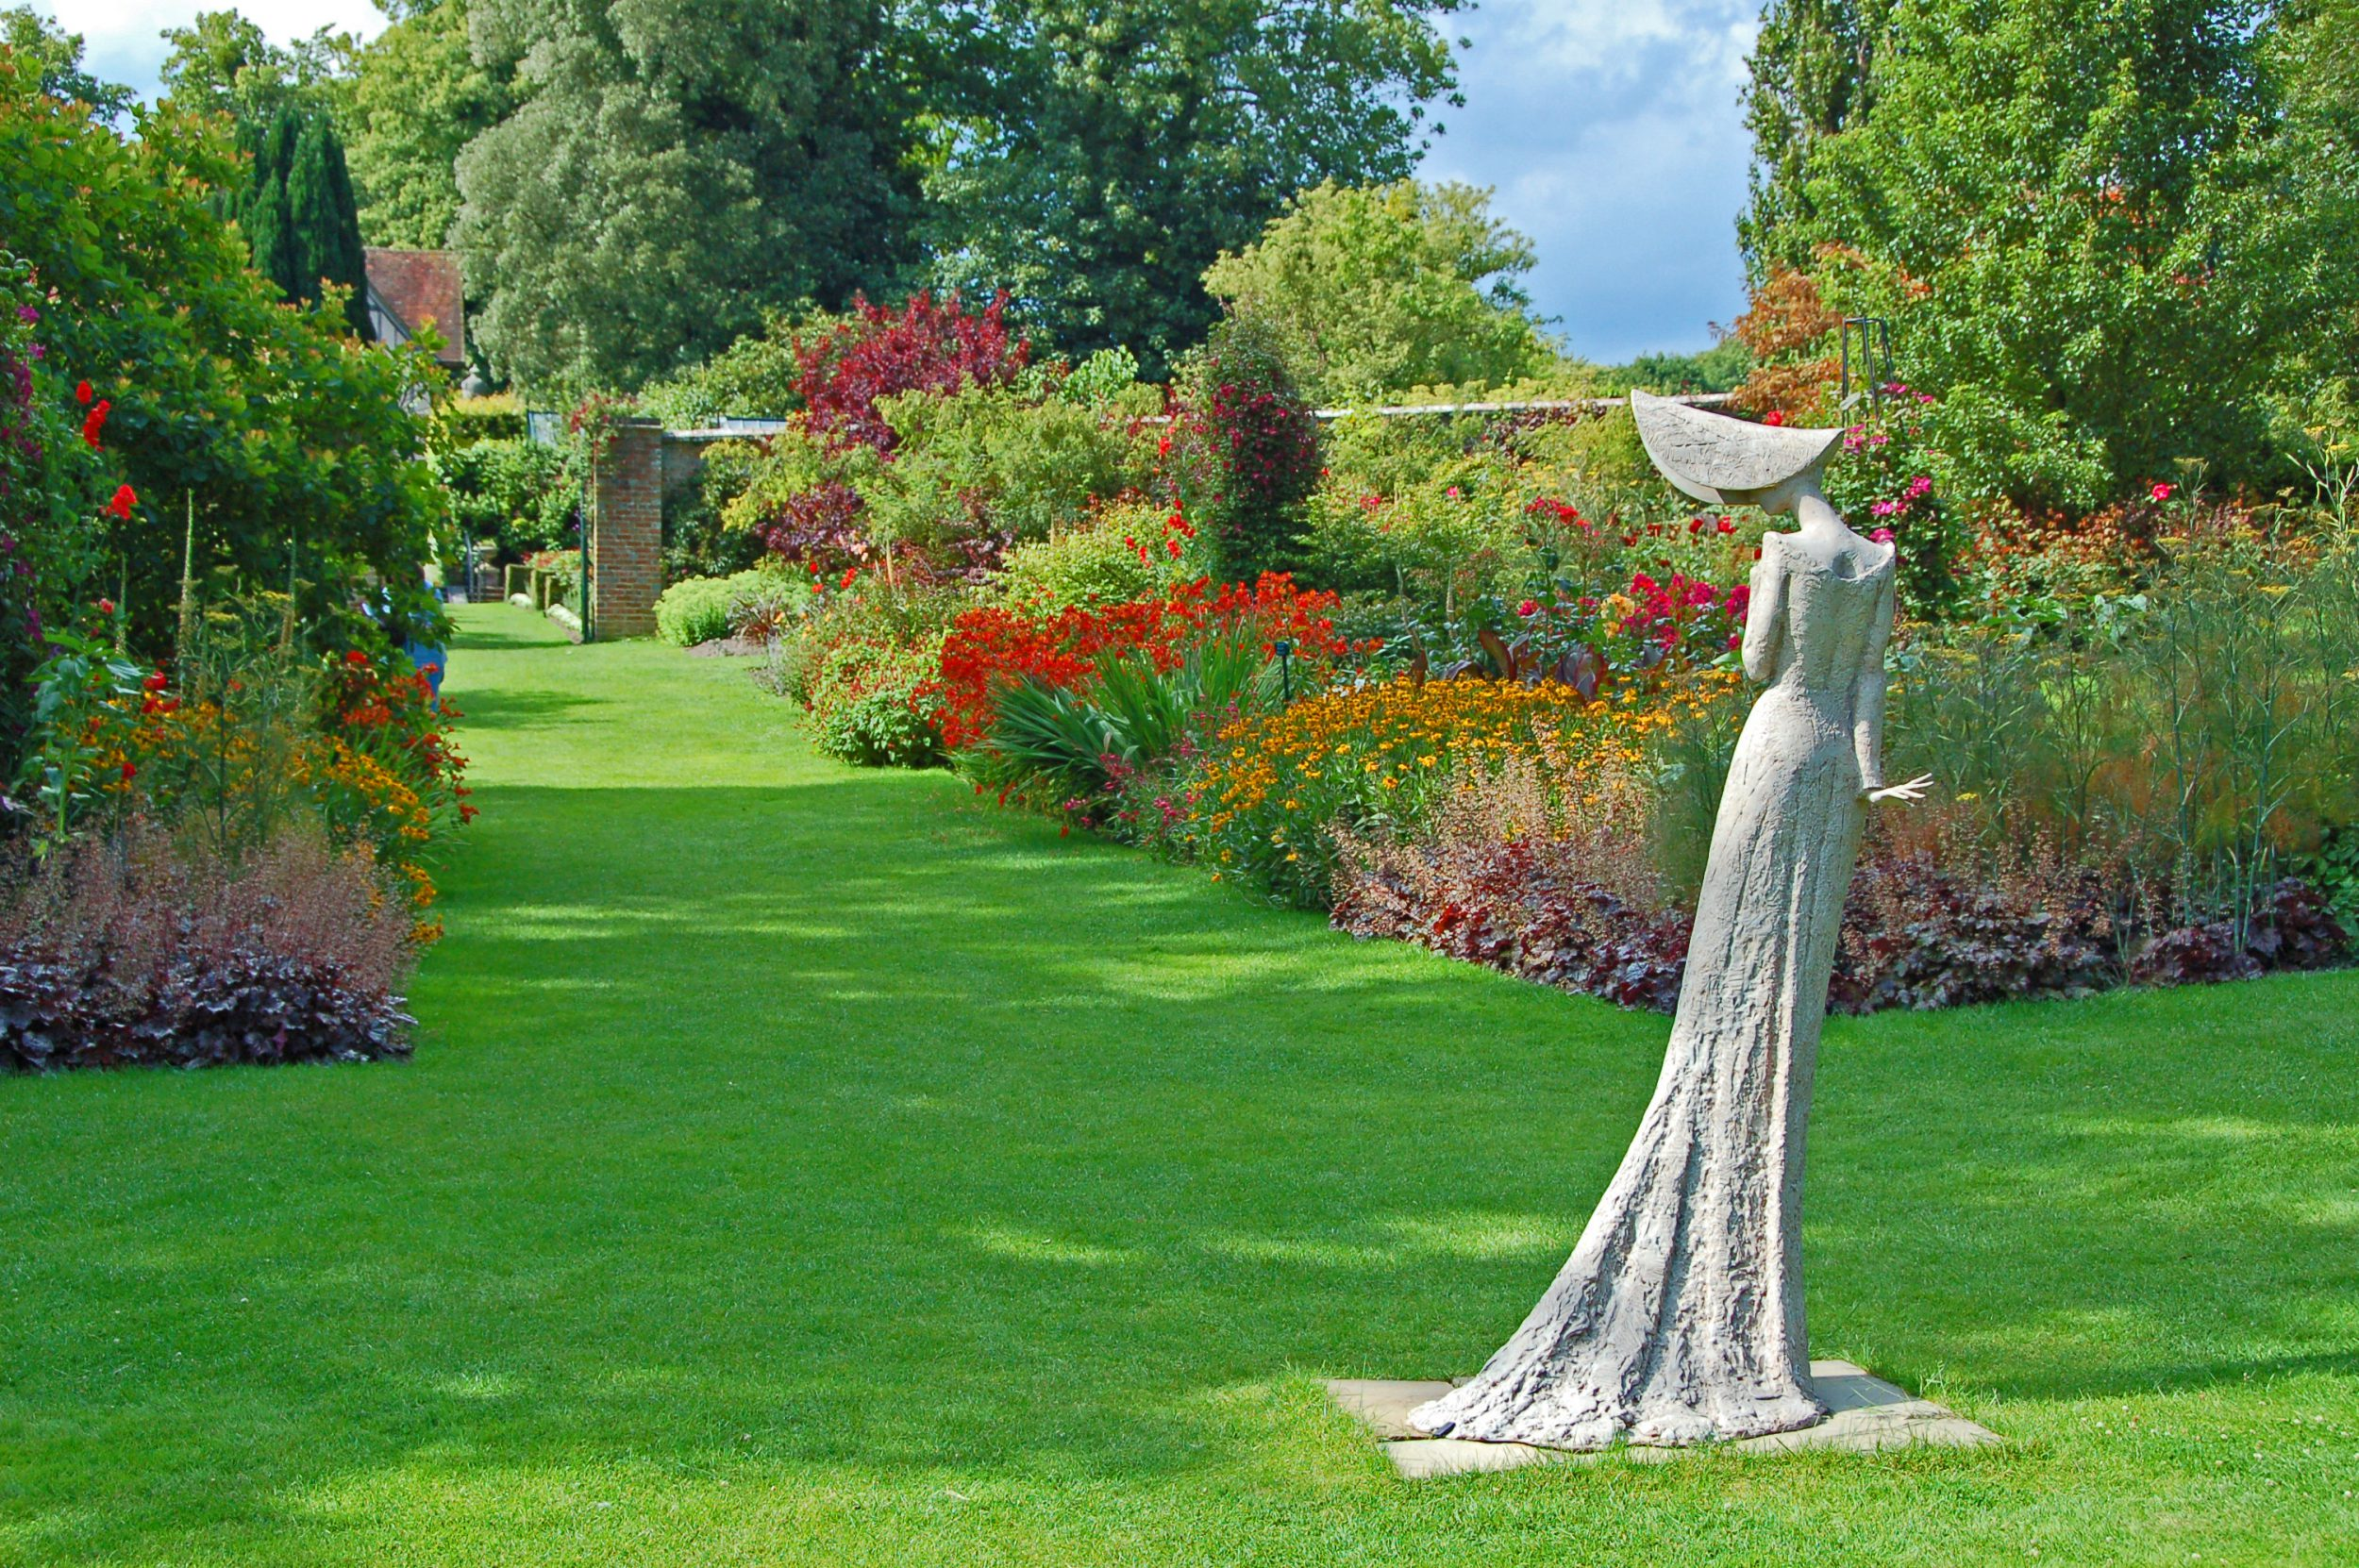 PASHLEY MANOR GARDENS Mr Bennet's Daughter by Philip Jackson taken by Ray Pearson